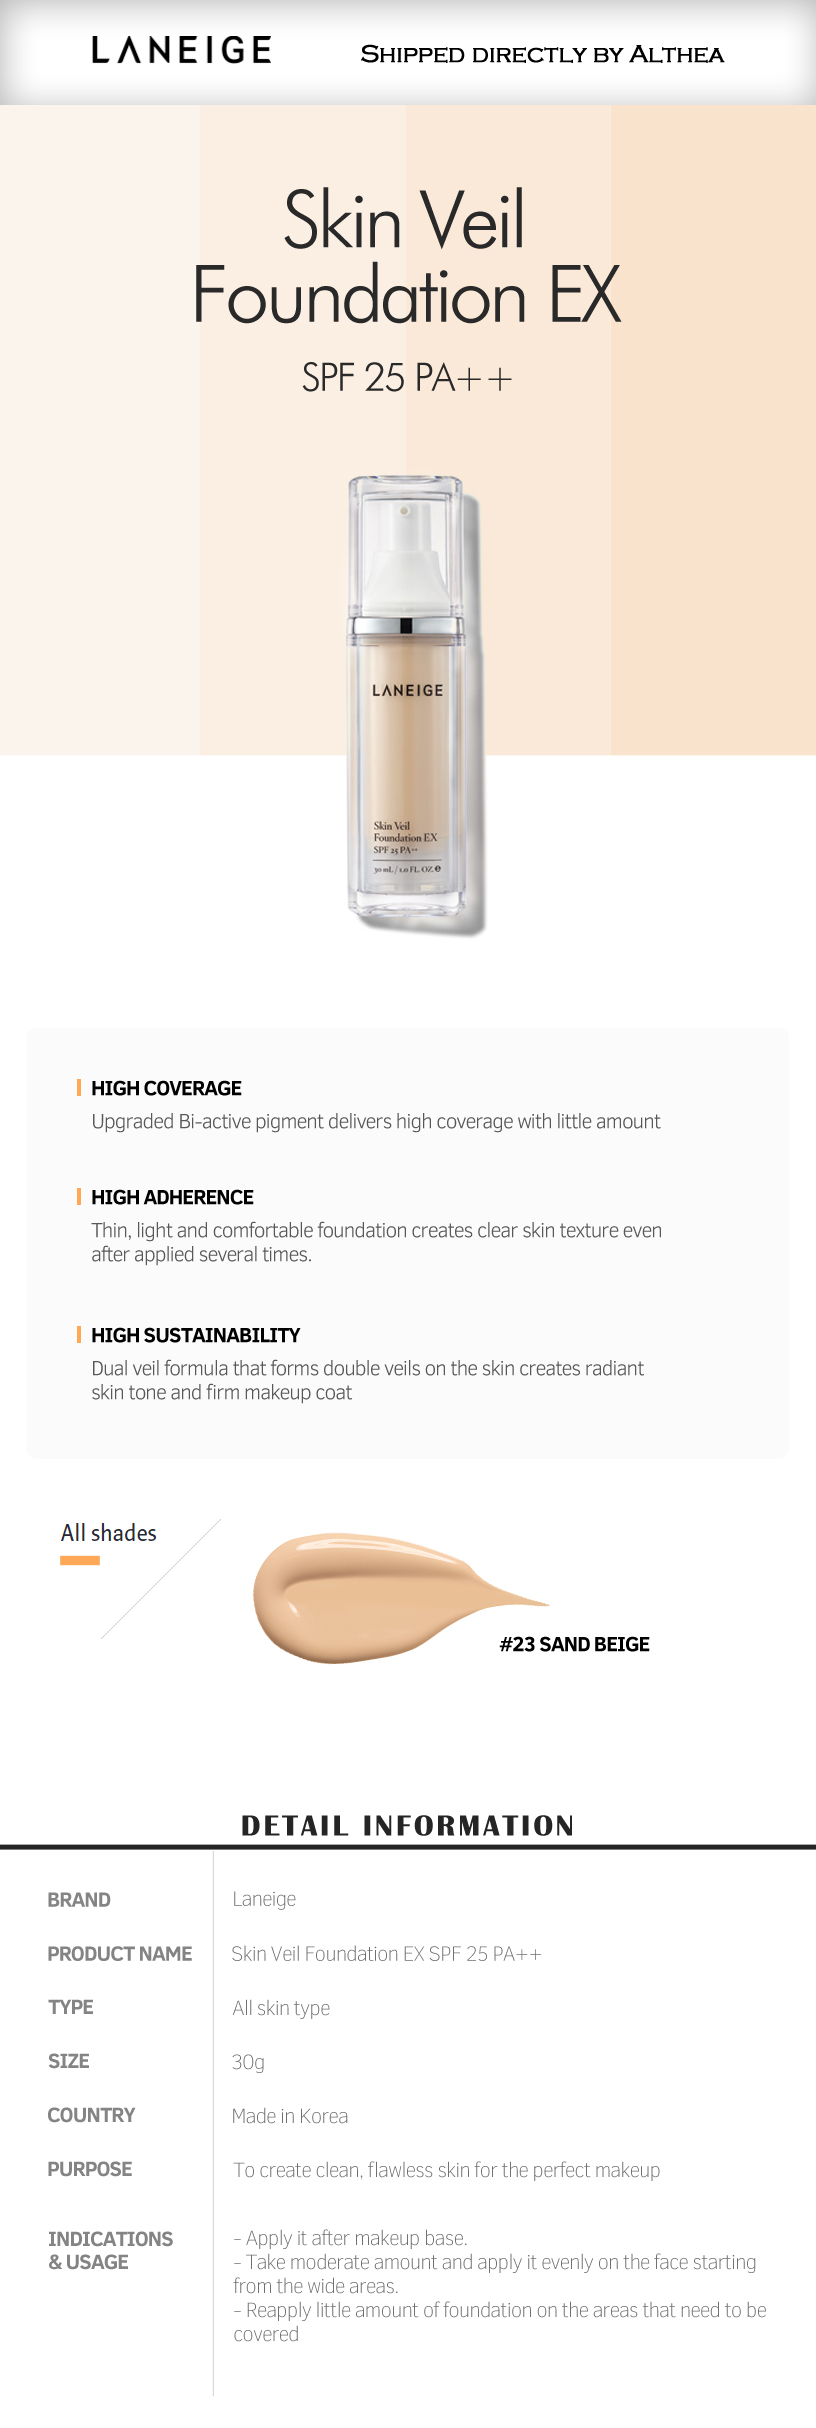 buy laneige skin veil foundation ex 23 online at althea singapore